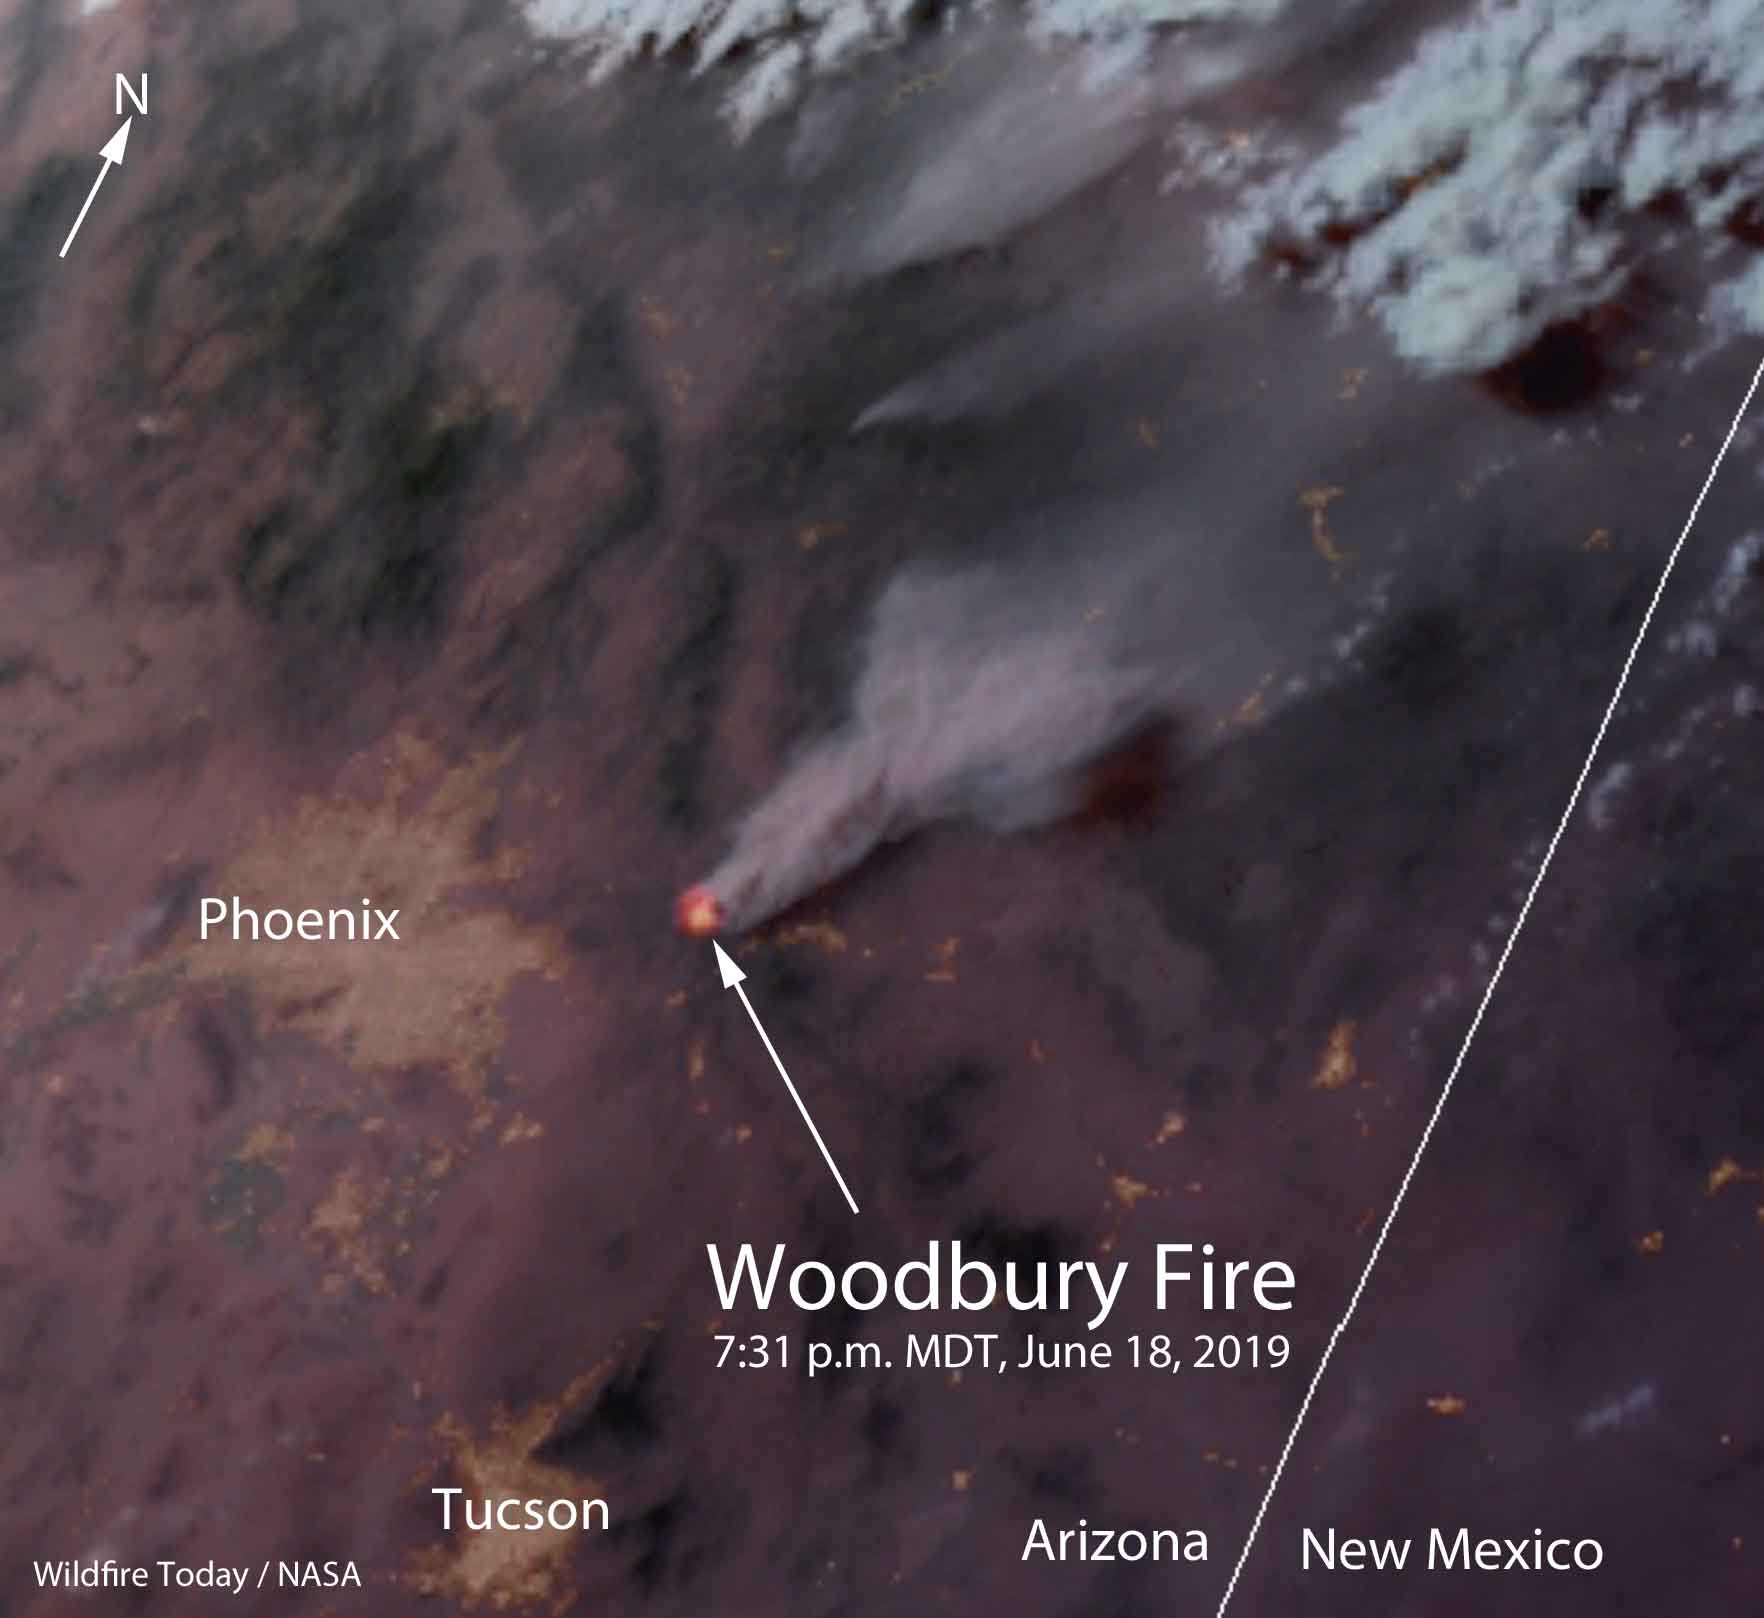 satellite photo Woodbury Fire Phoenix Arizona